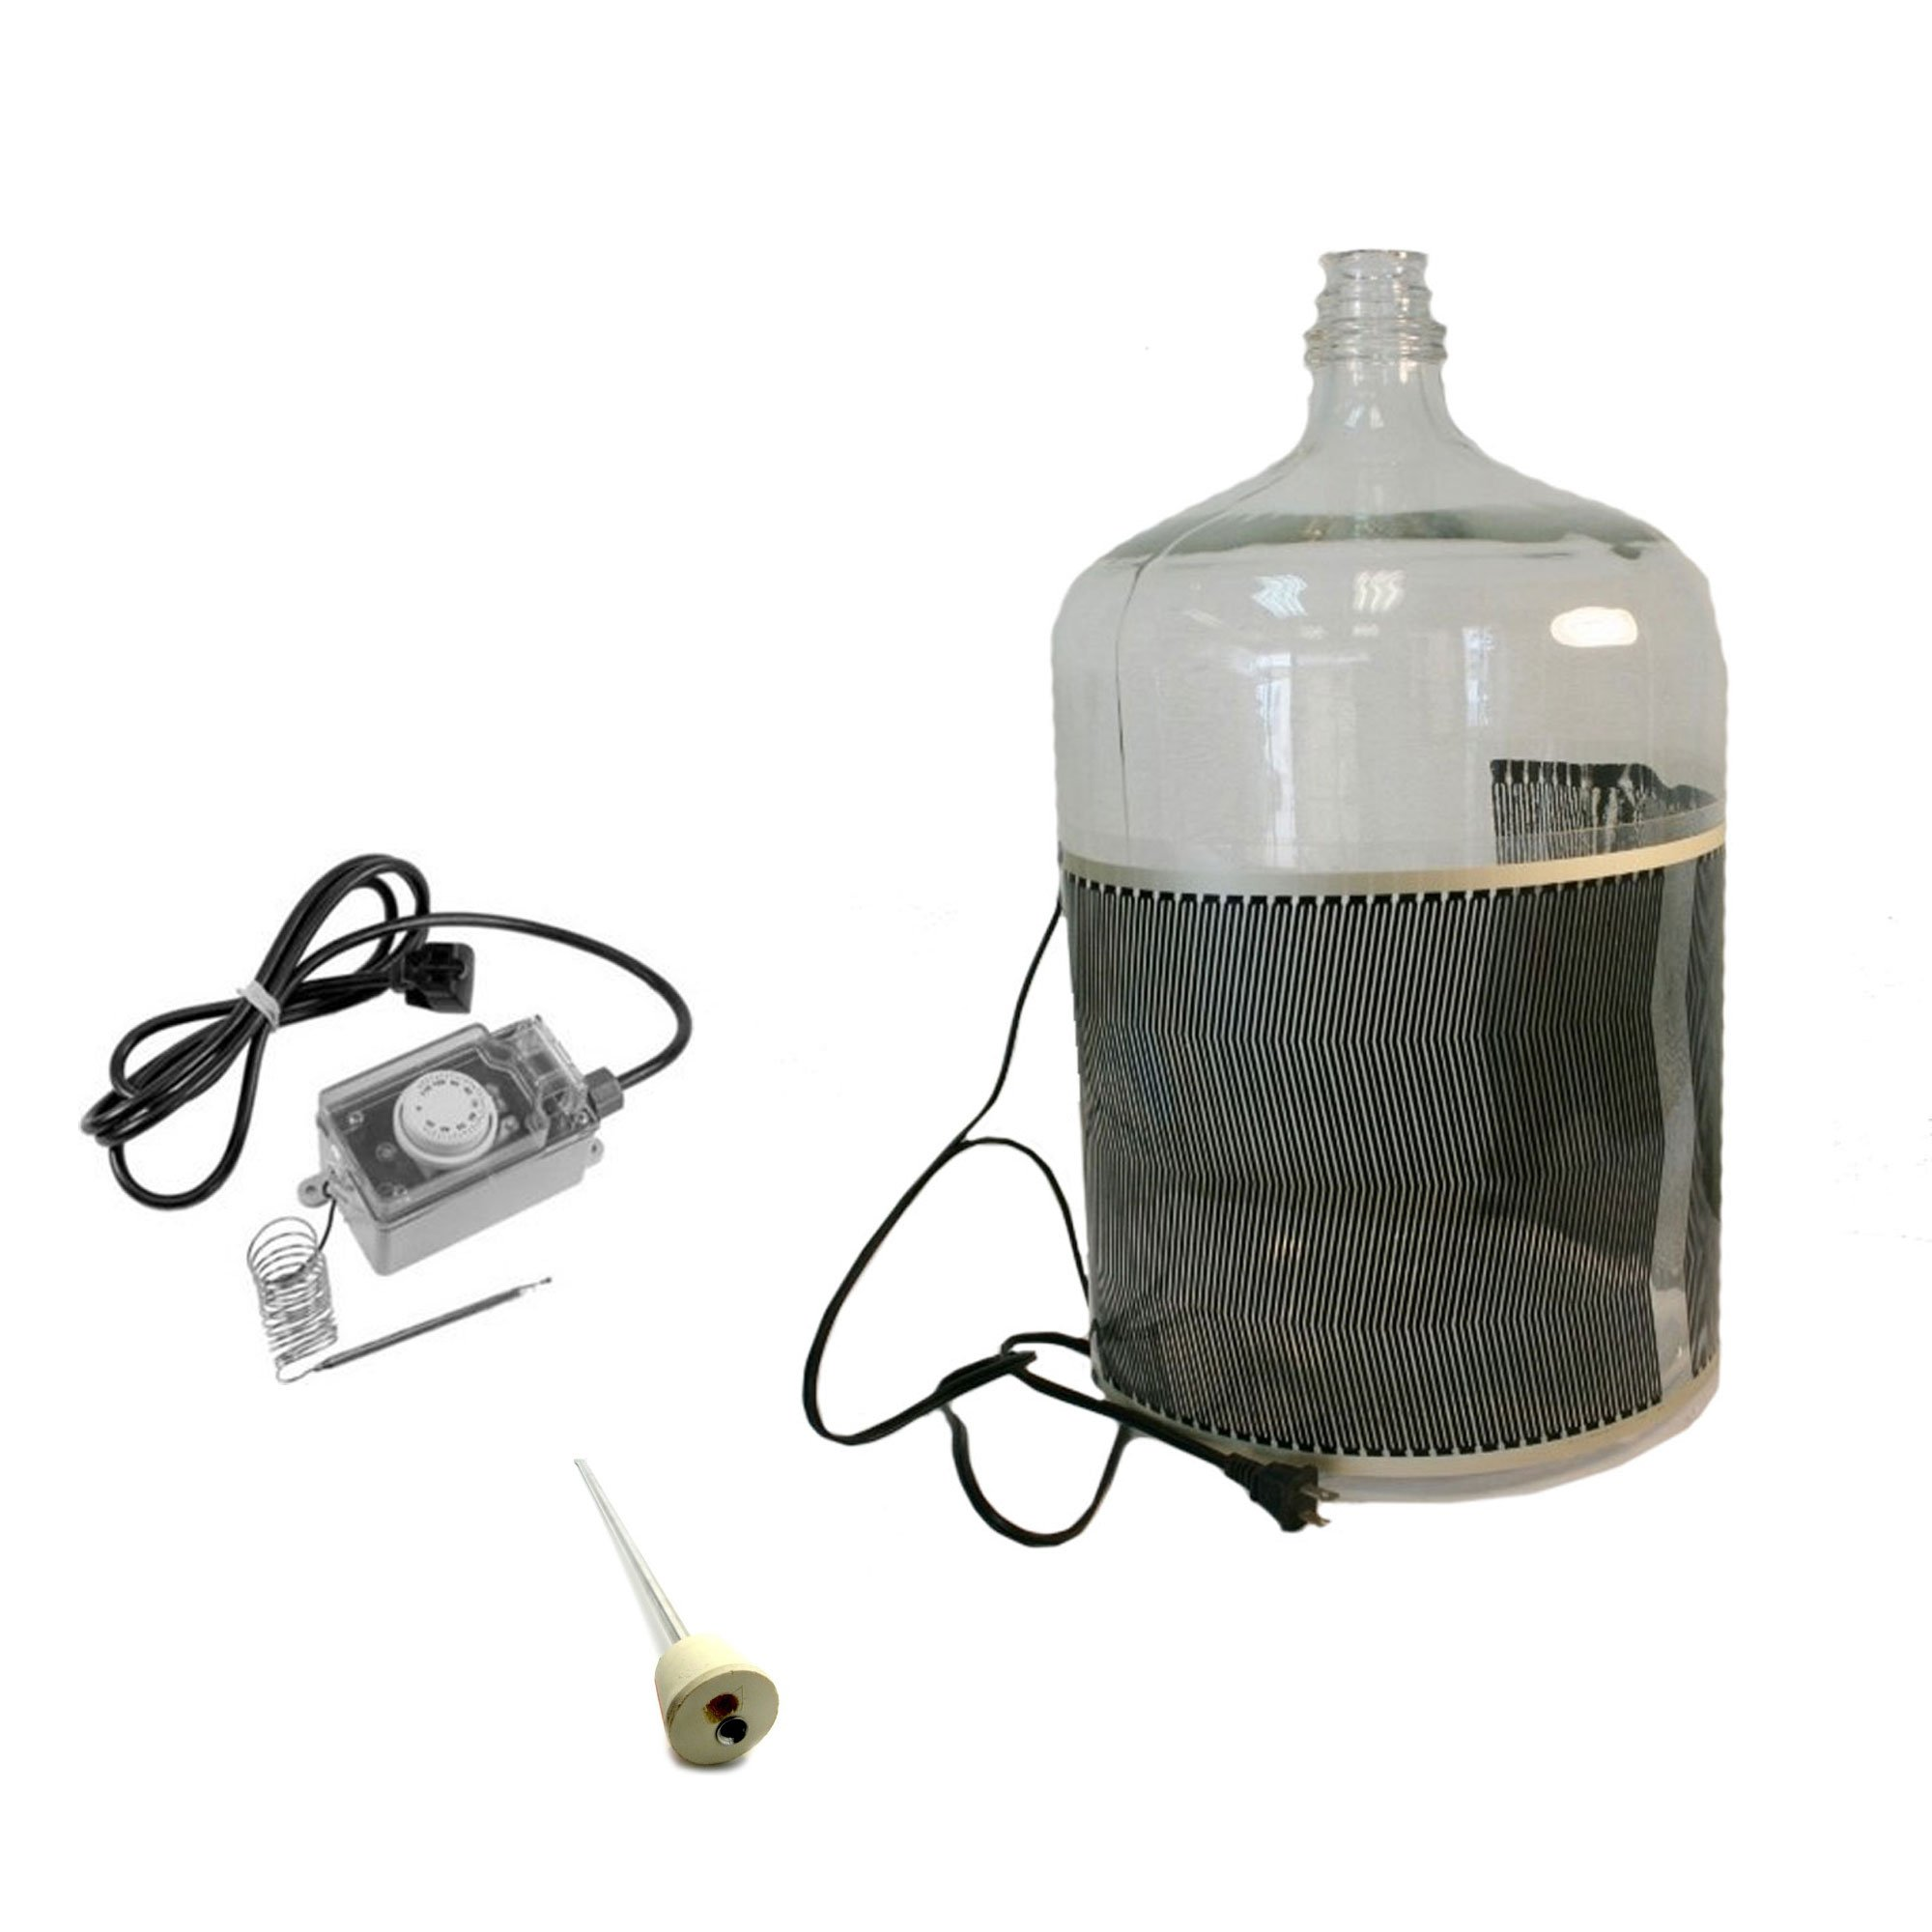 HomeBrewStuff Fermentation Temperature Control Kit